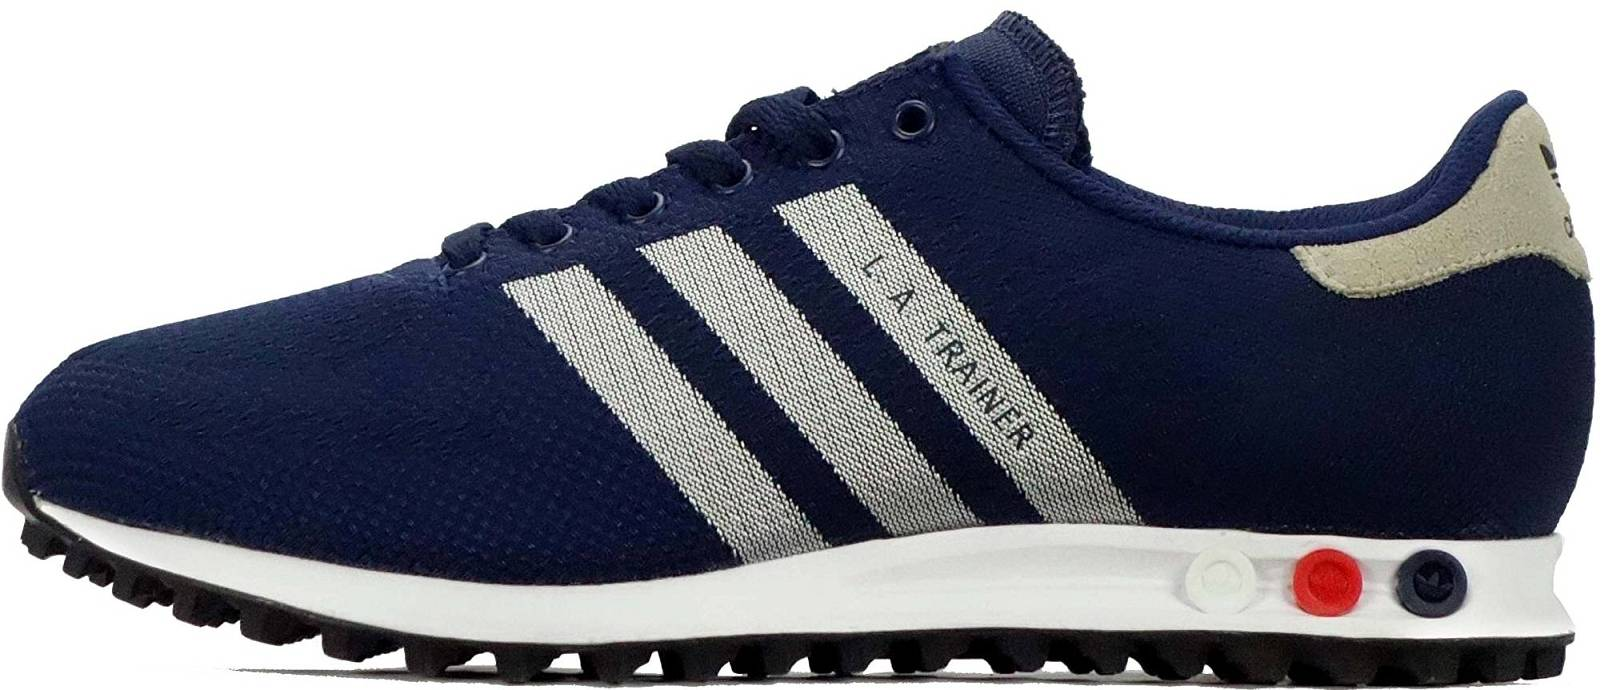 Adidas LA Trainer Weave – Shoes Reviews & Reasons To Buy